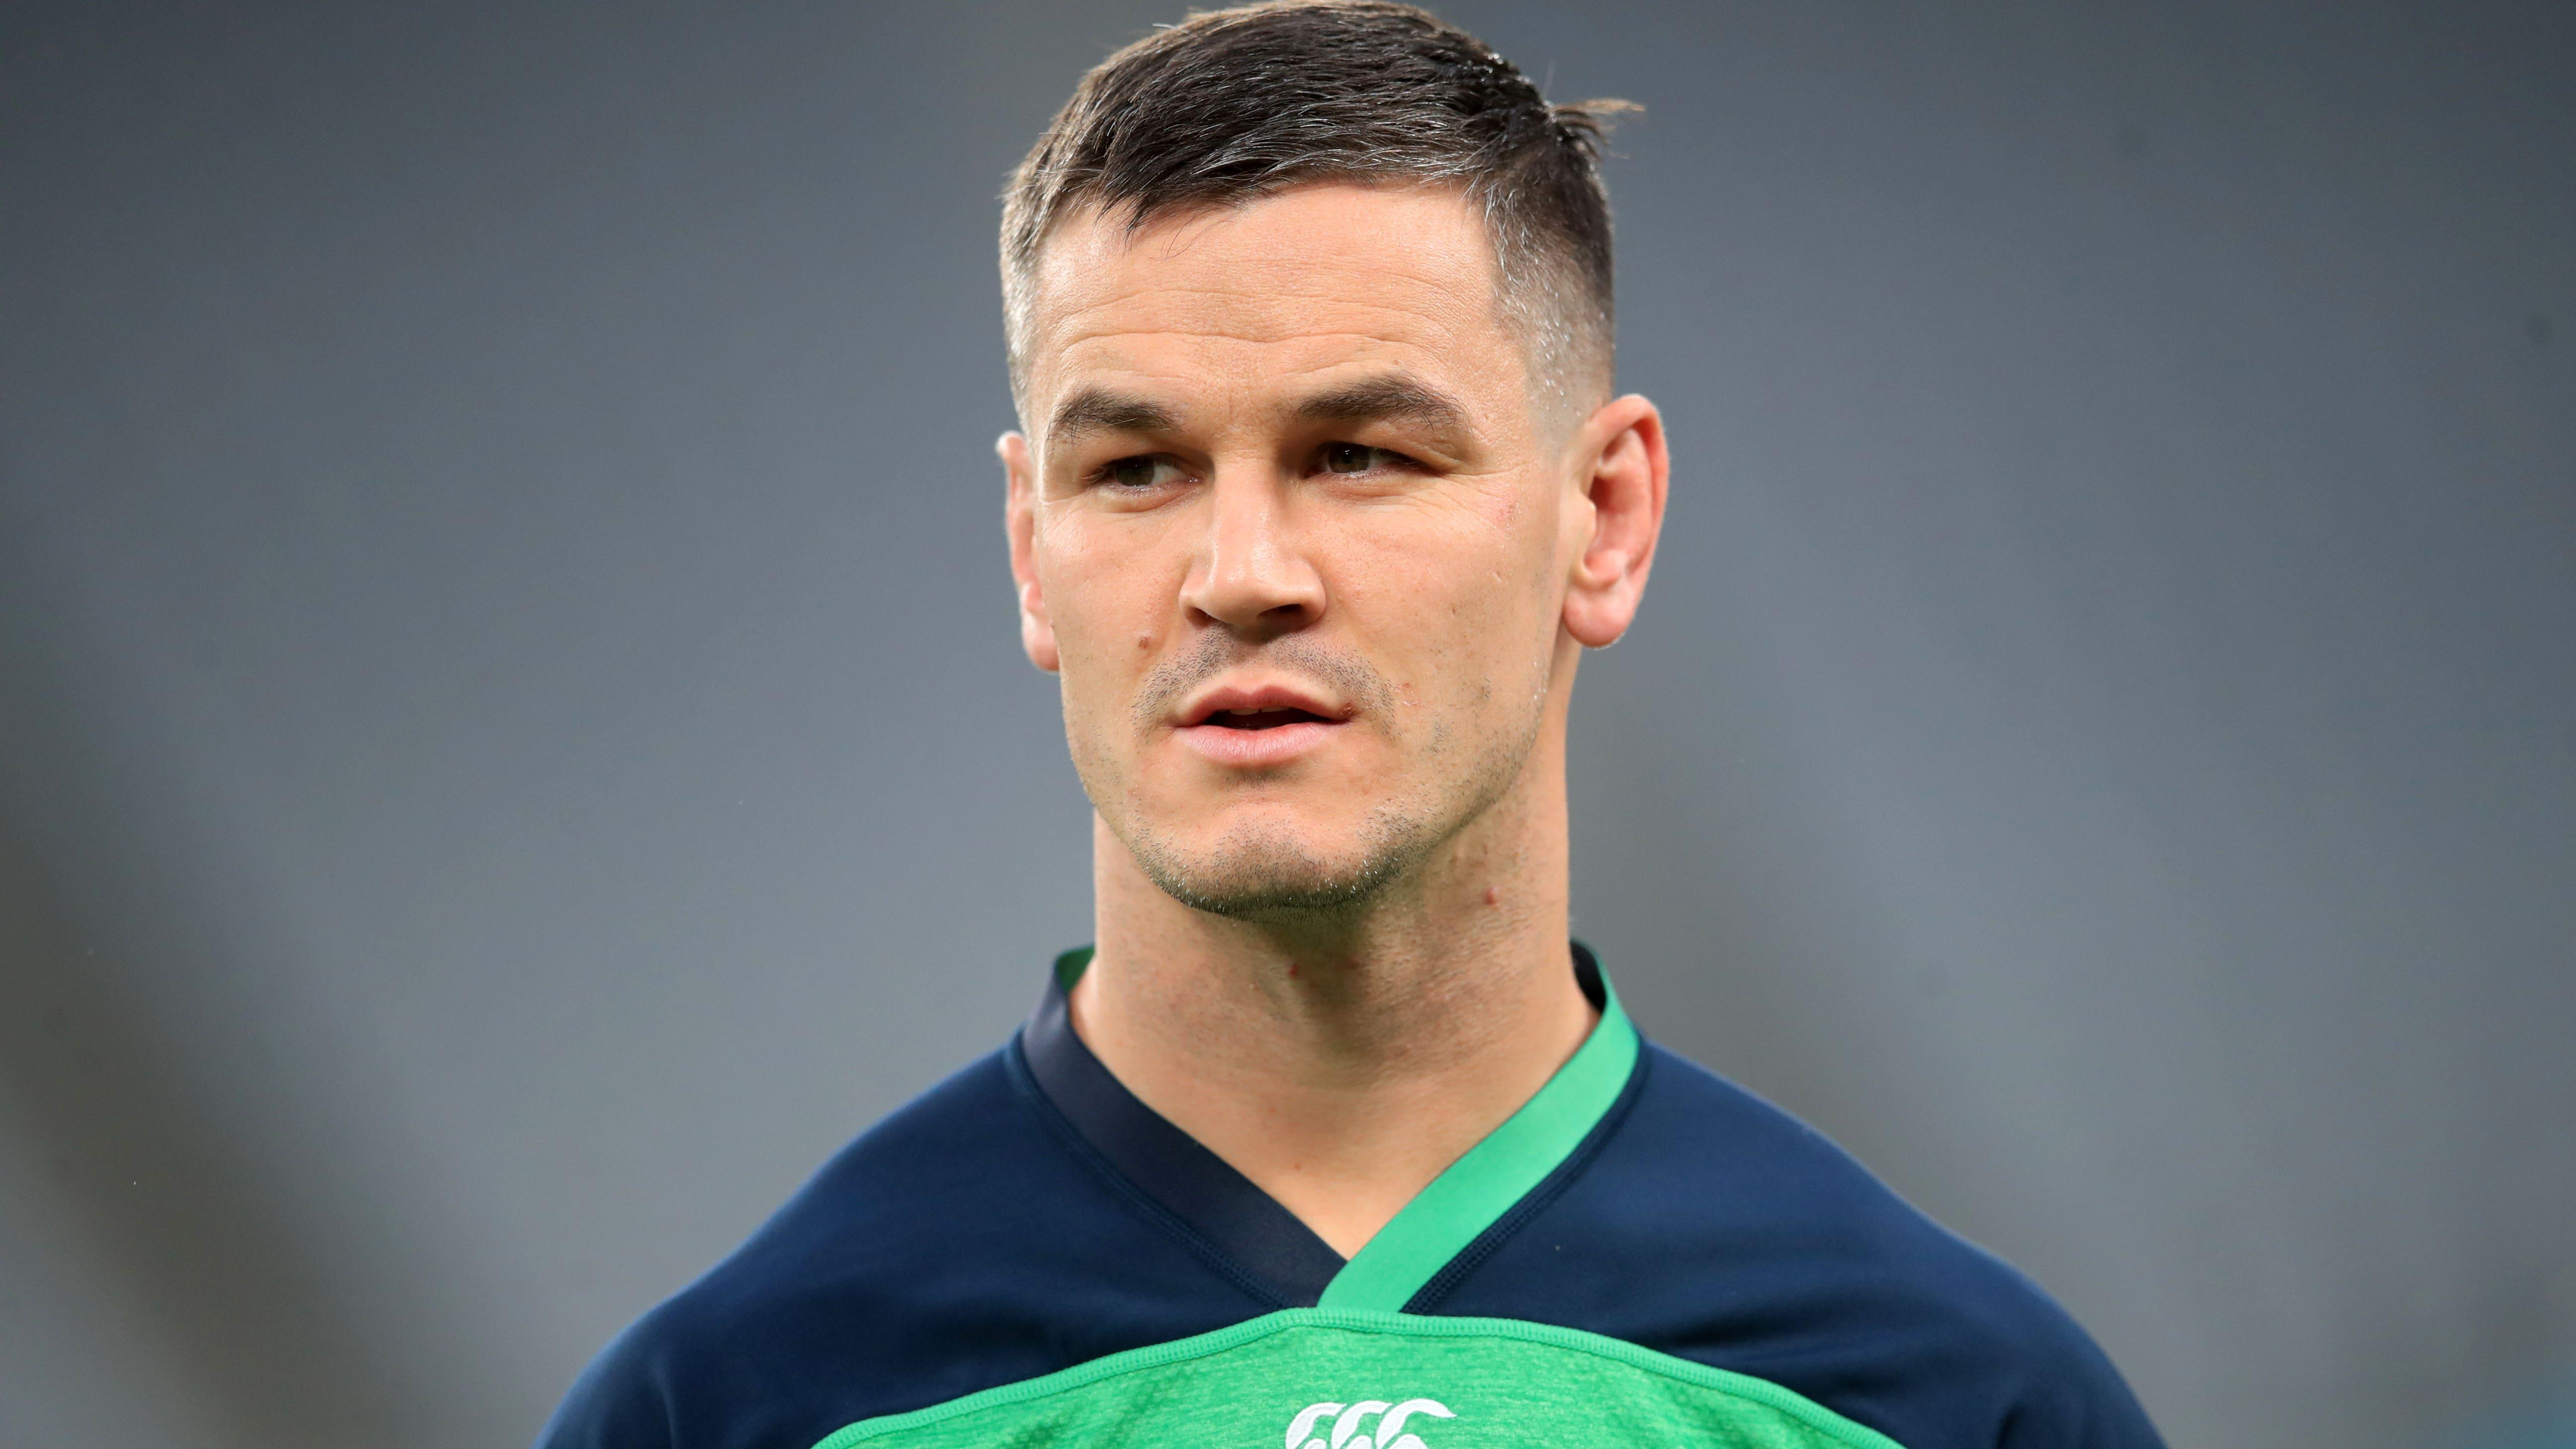 Ireland skipper Johnny Sexton signs contract extension with IRFU